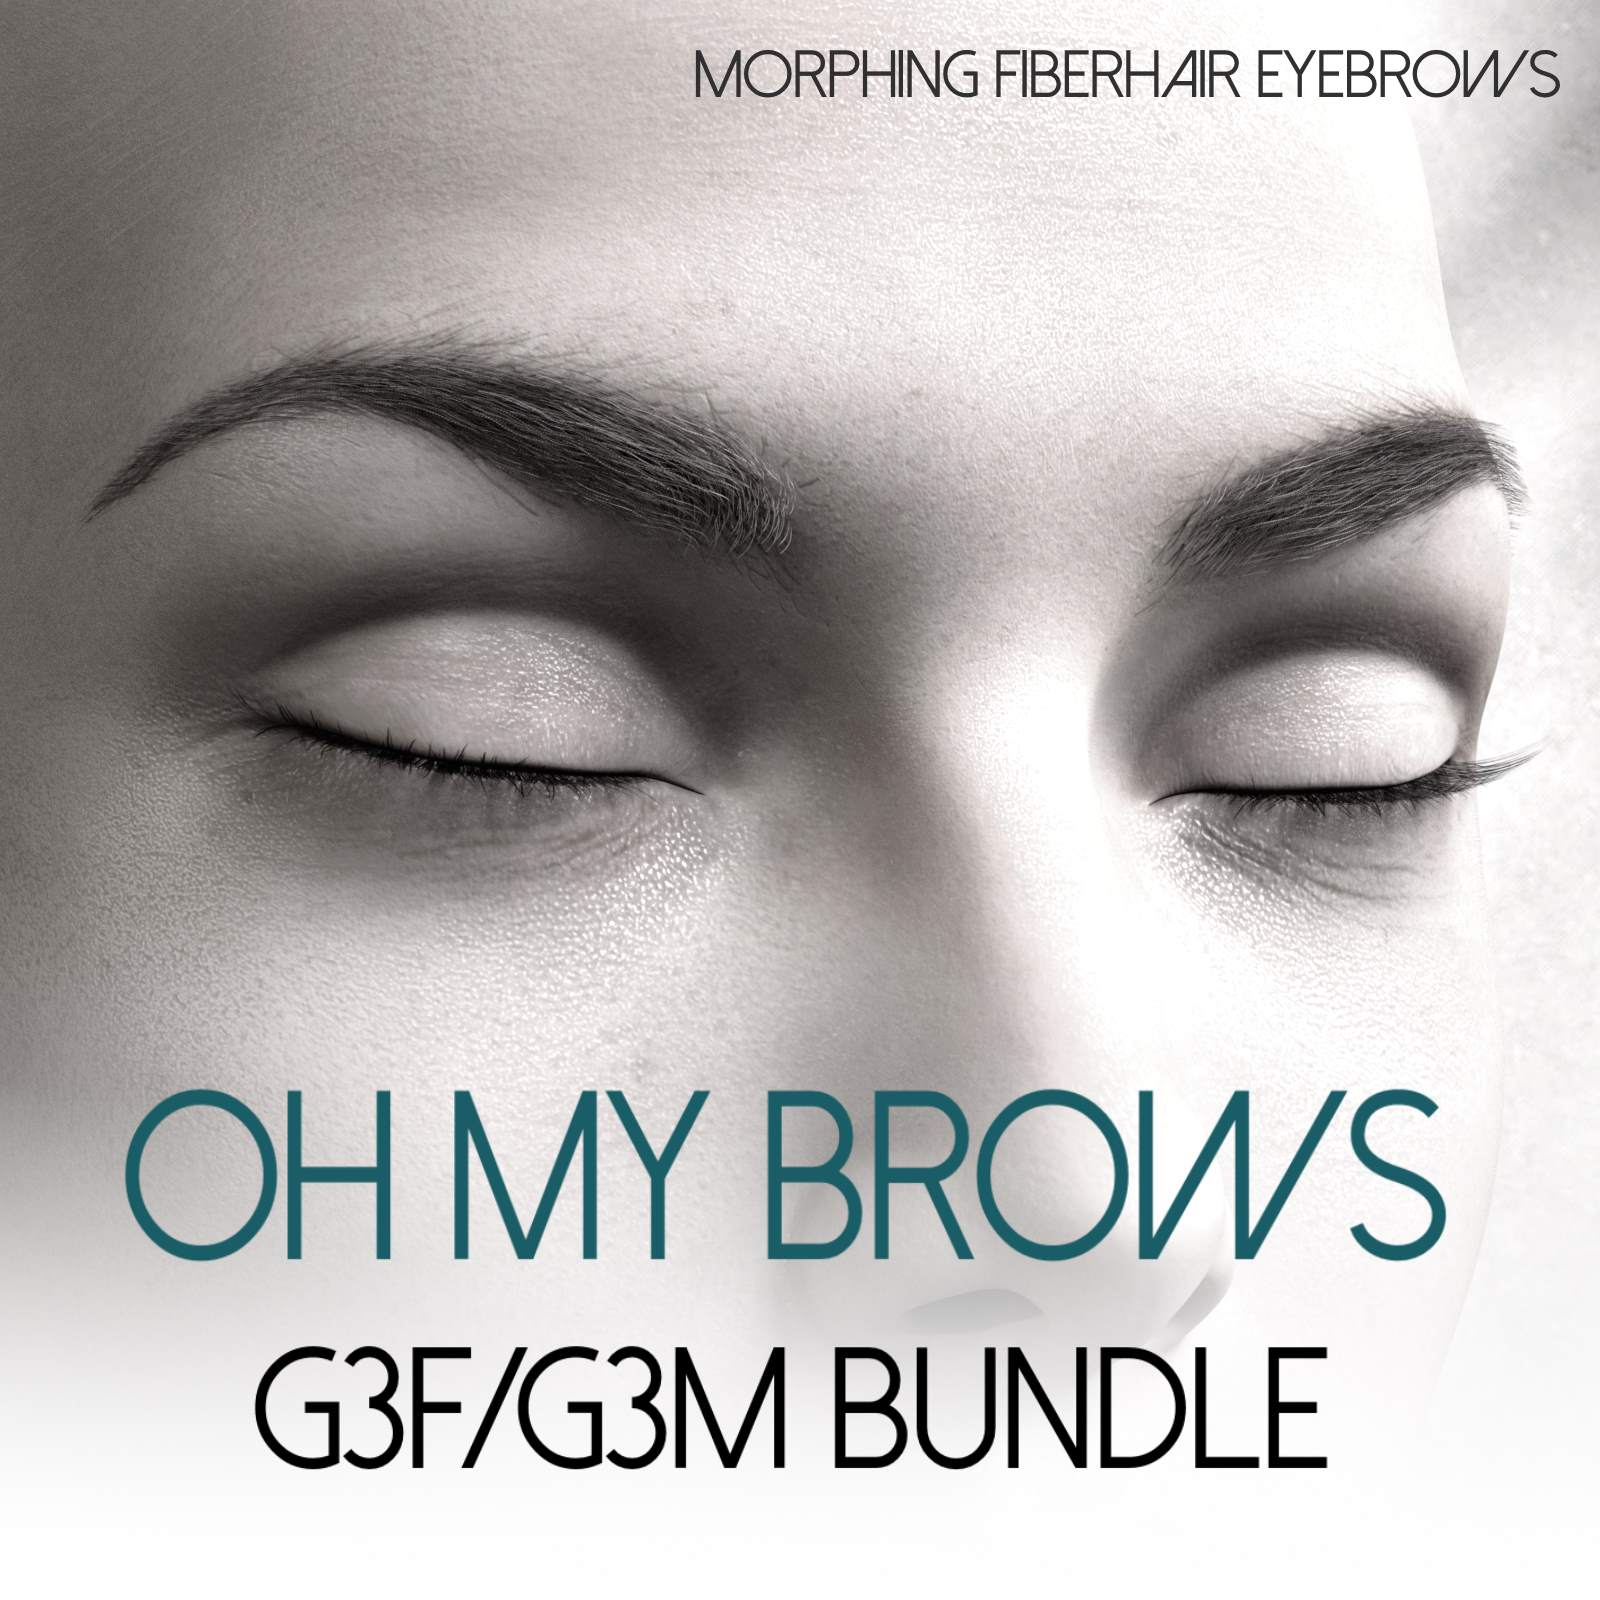 Oh My Brows BUNDLE Morphing Eyebrows for G3F and G3M